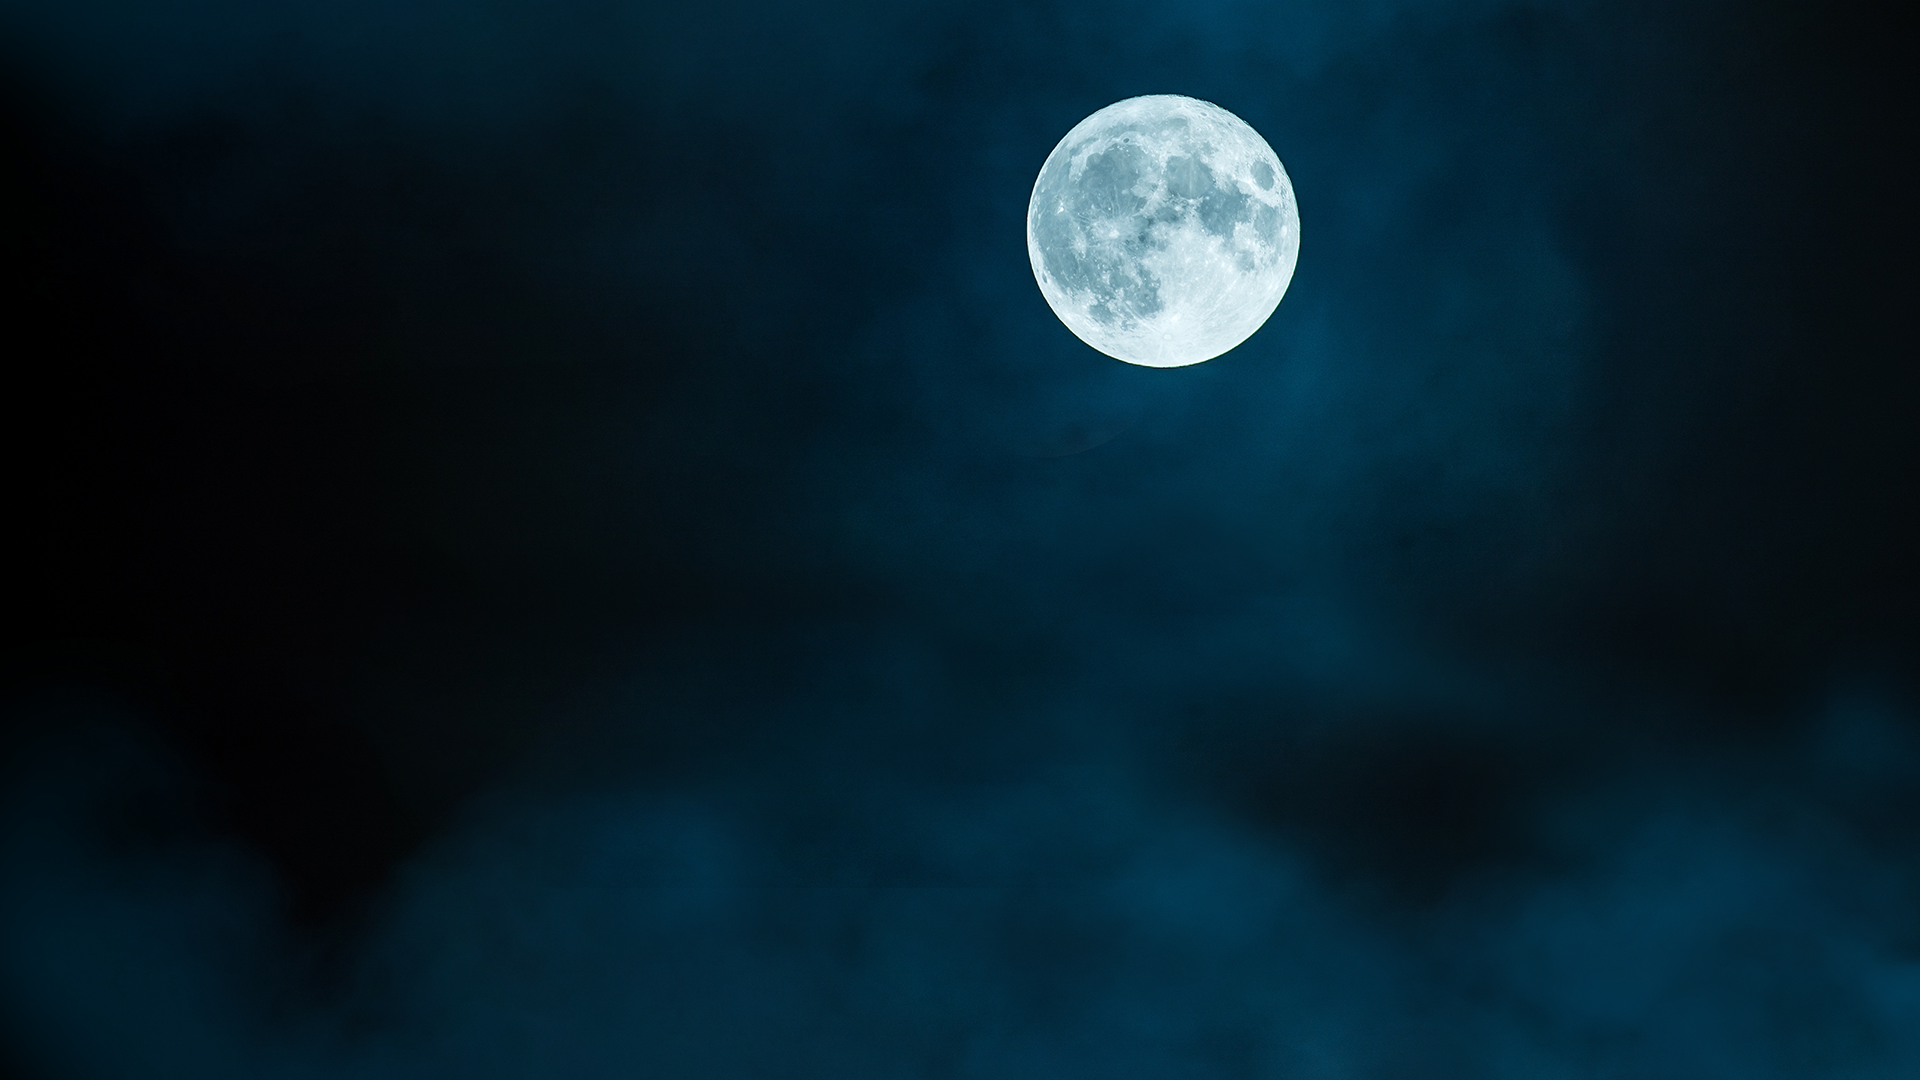 Download this free full moon tablet wallpaper in hd or 4k 0205 - Tablet wallpaper 4k ...